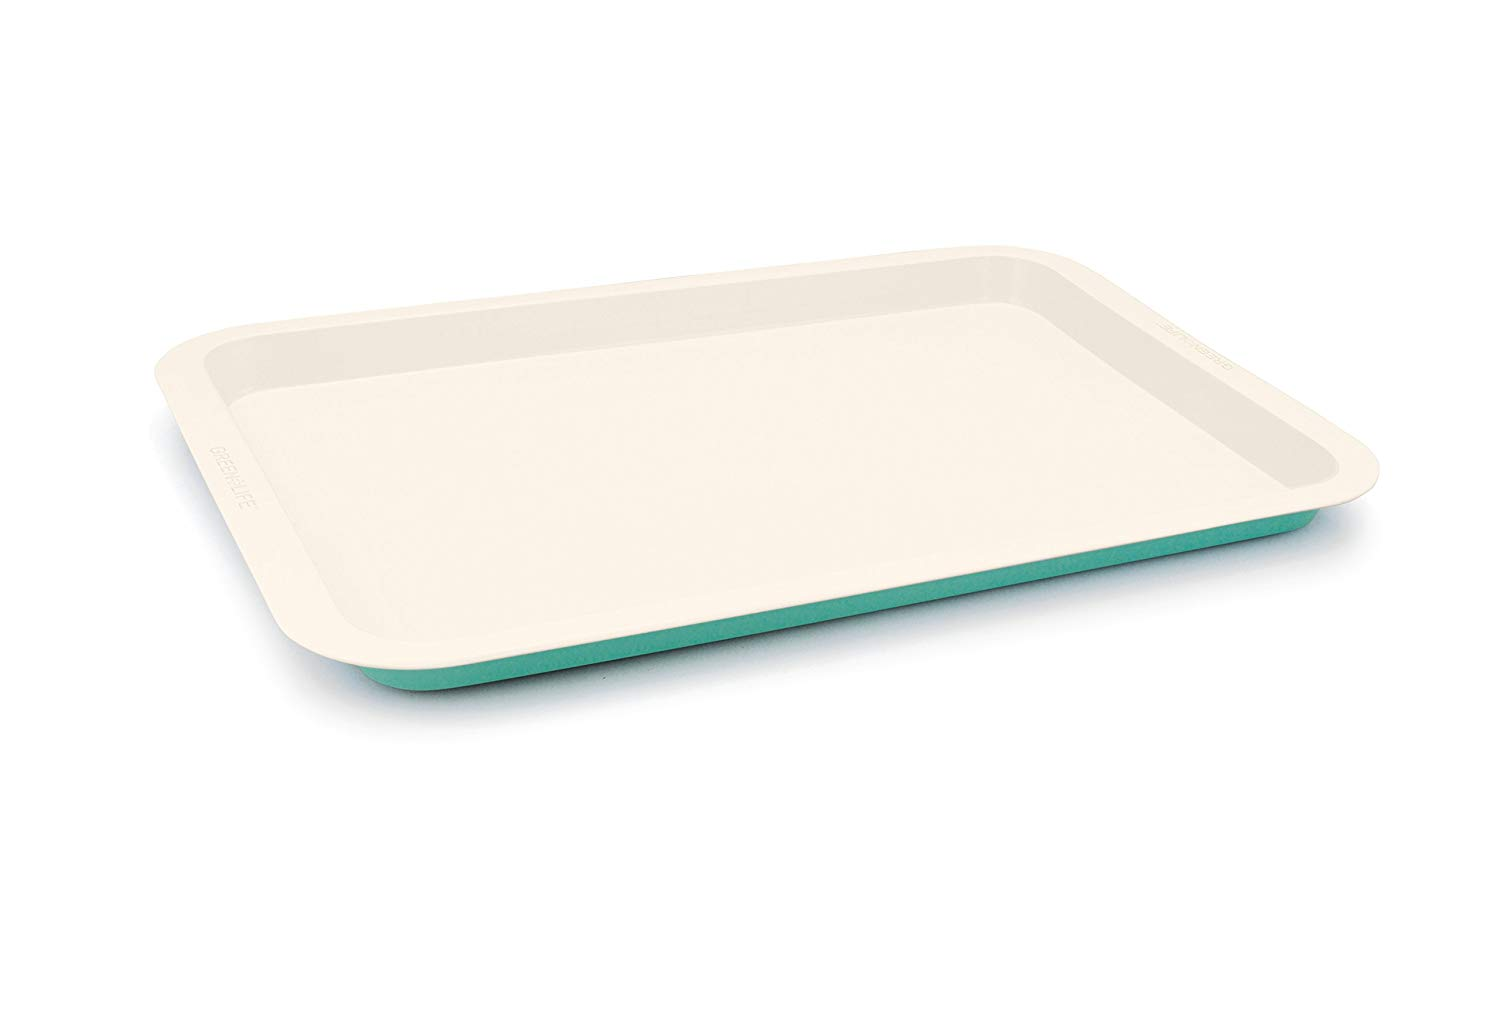 GreenLife Ceramic Non-Stick Cookie Sheet